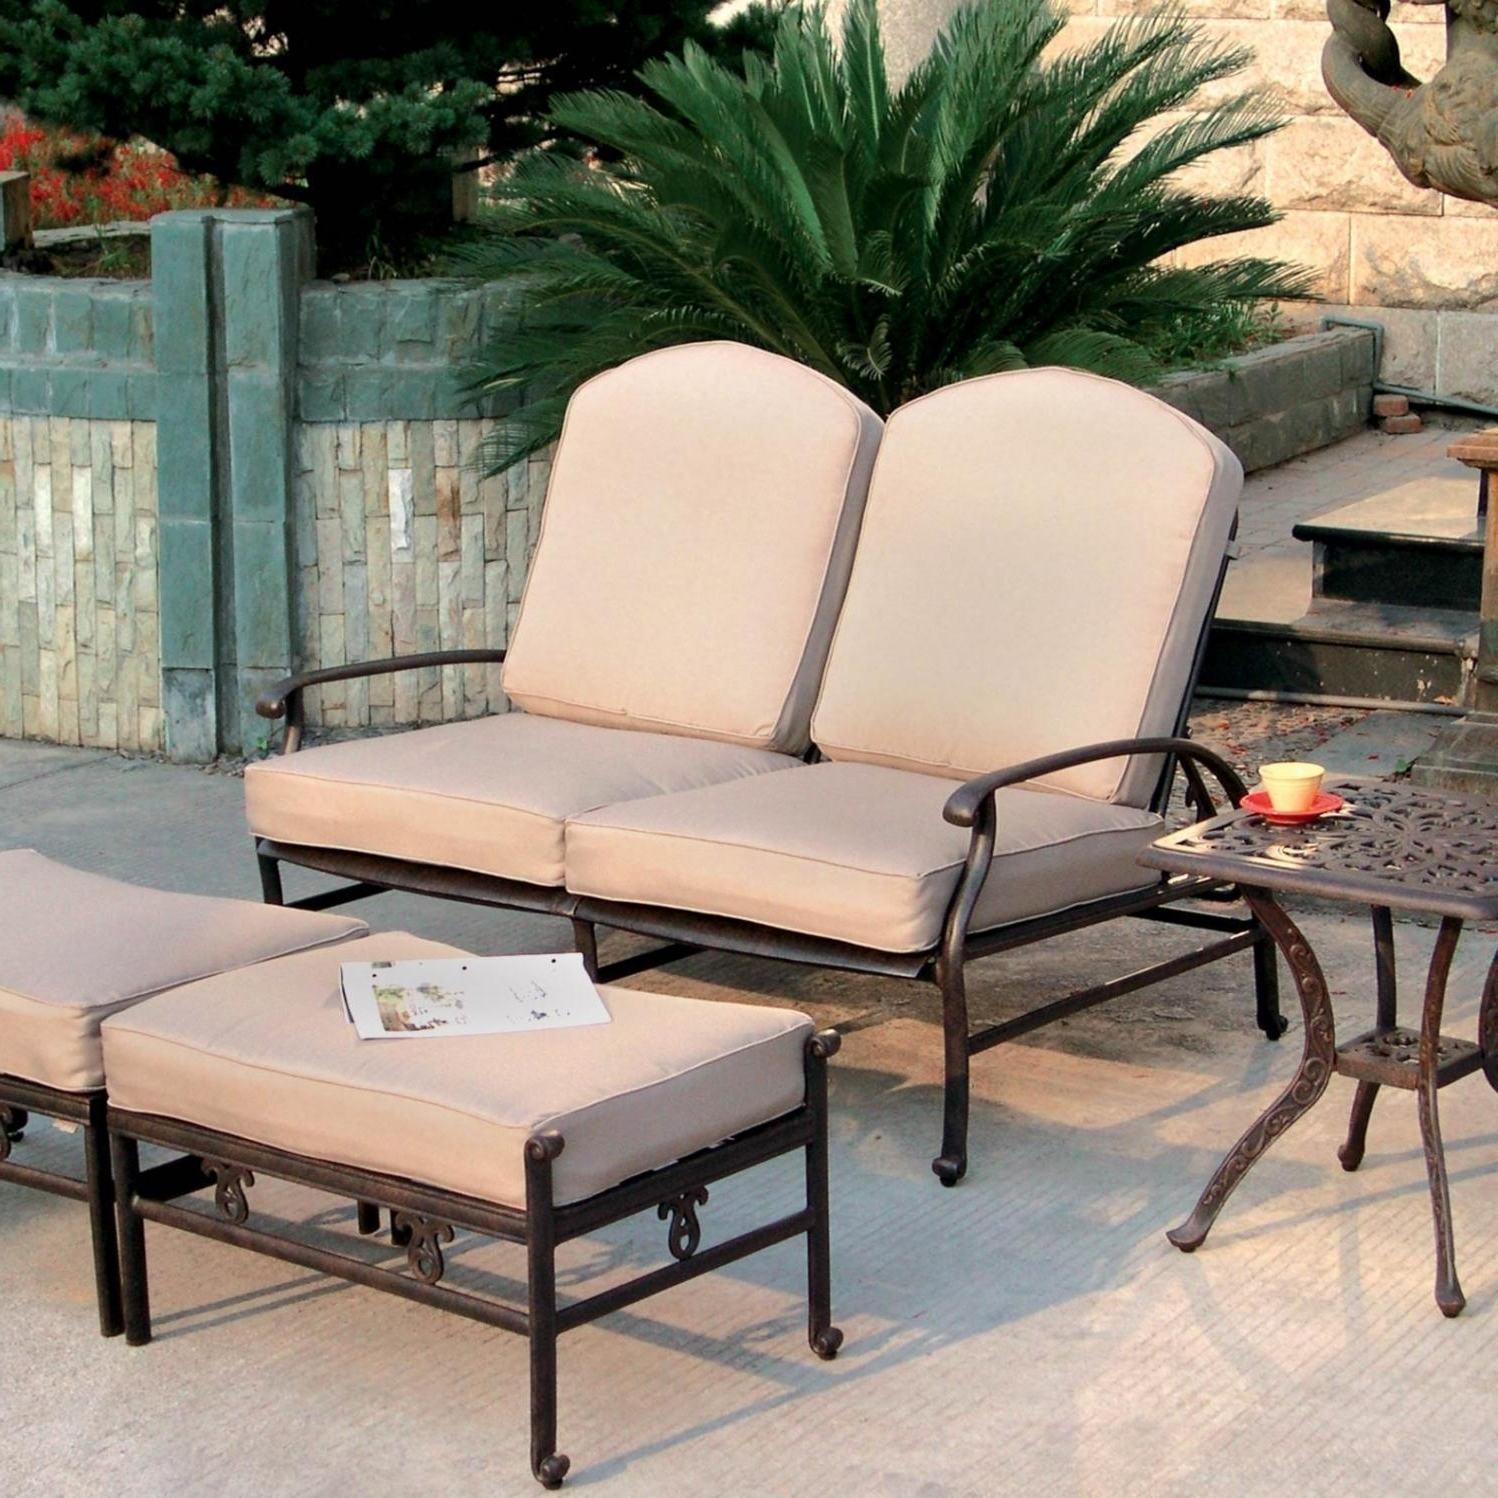 Patio Conversation Sets With Ottomans Within Well Liked Darlee Catalina 3 Piece Cast Aluminum Reclining Patio Loveseat Set (View 17 of 20)